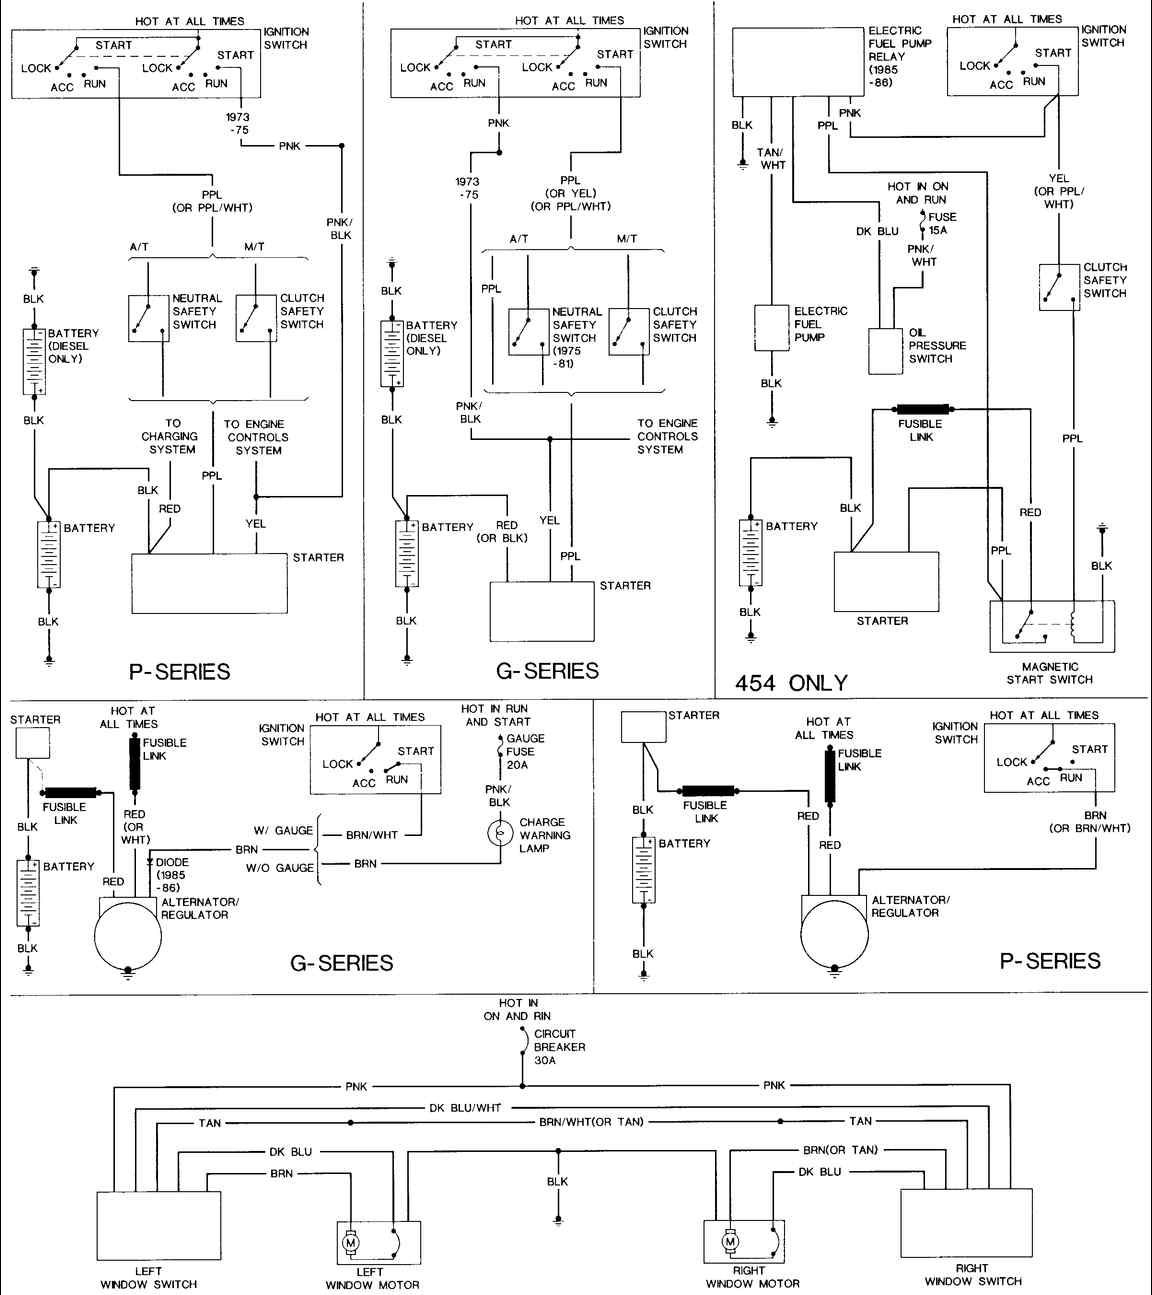 0c73623a181dc376dbb4777e2029d285 85 chevy truck wiring diagram 85 chevy van the steering column gm steering column wiring diagram at virtualis.co